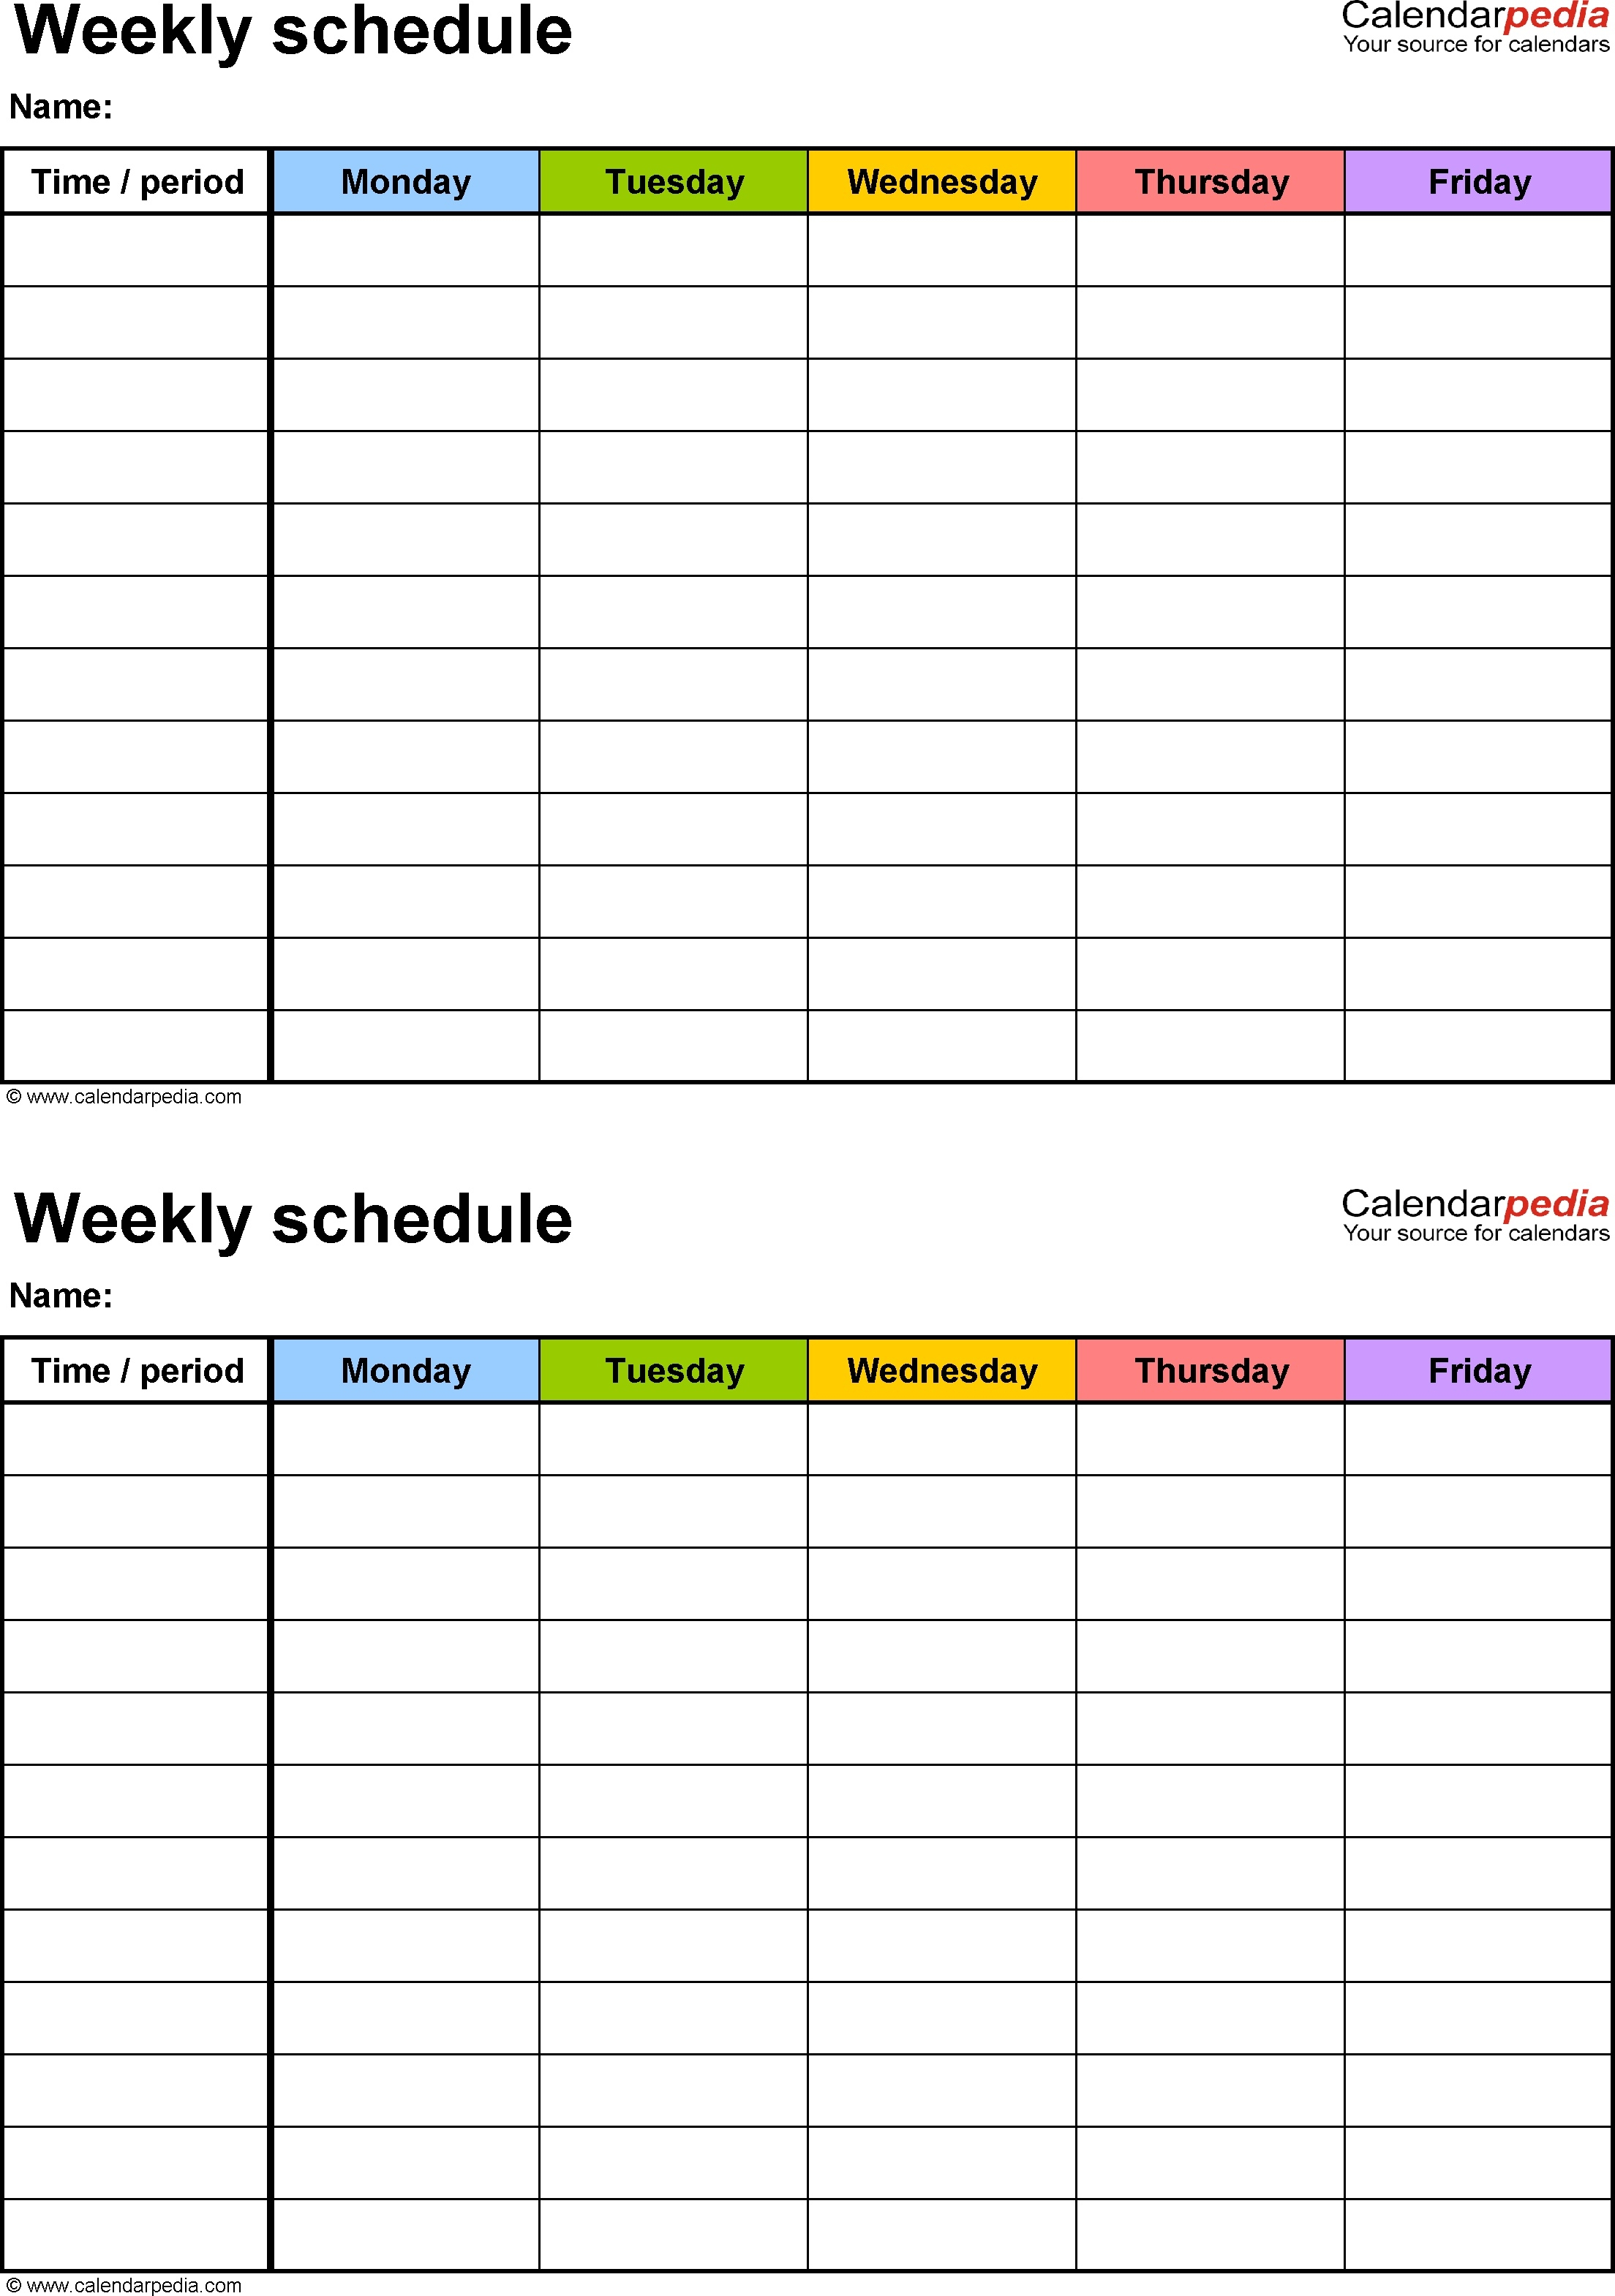 Weekly Schedule Template For Pdf Version 3 2 Schedules On One Page  2 Week Blank Calendar Printable